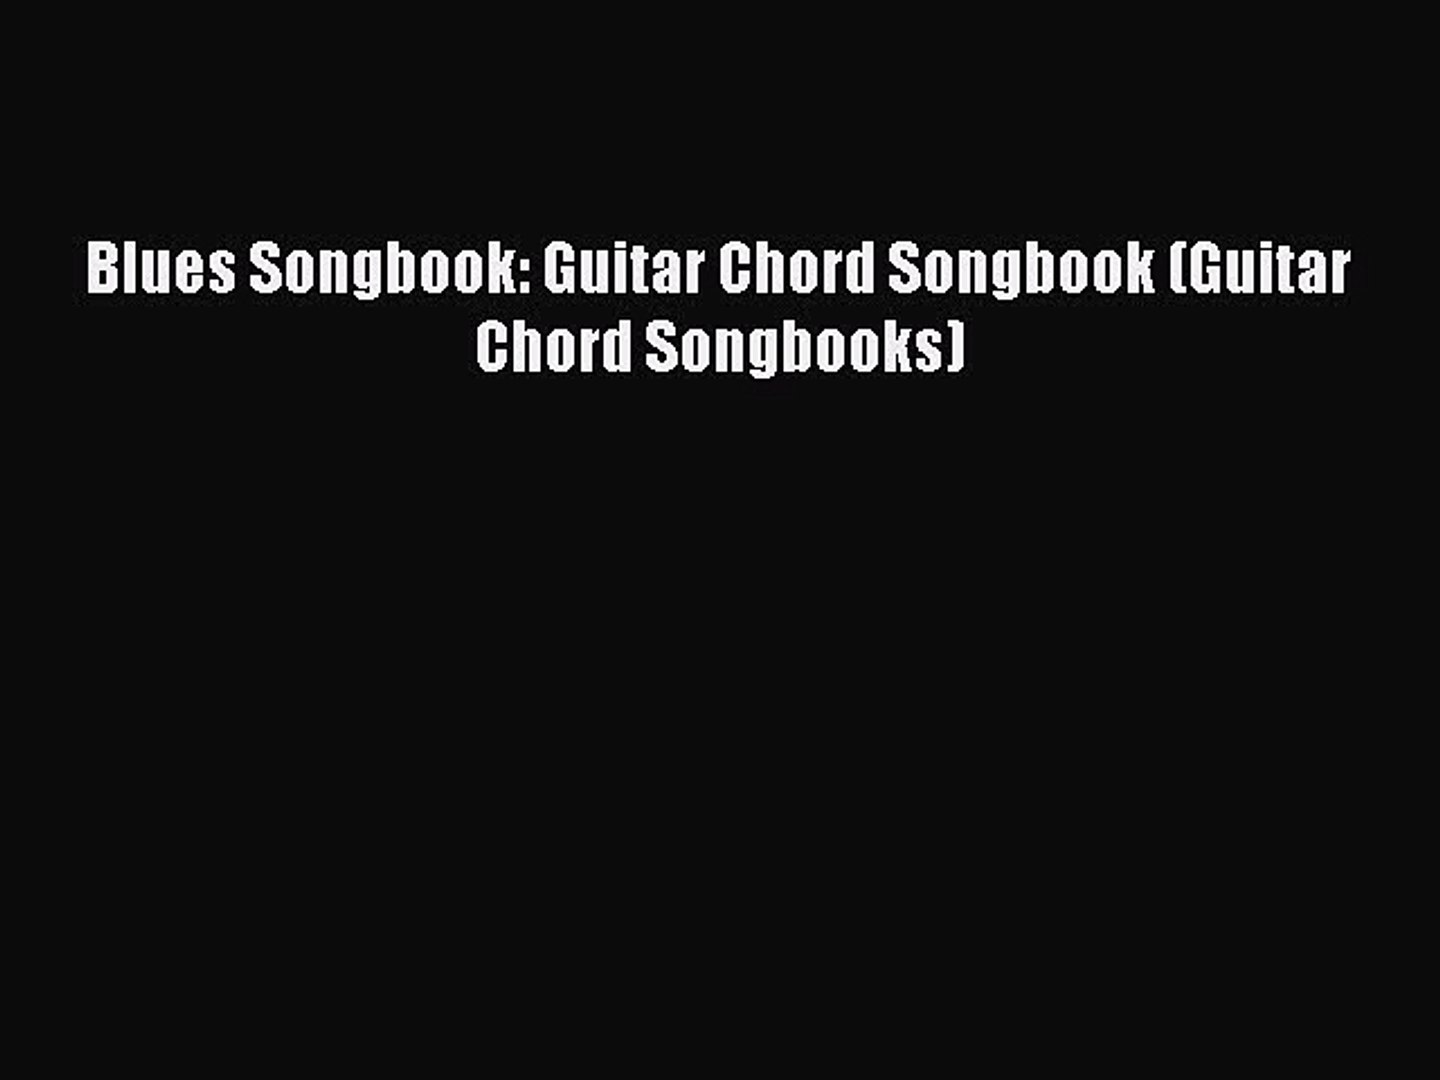 Download Blues Songbook Guitar Chord Songbook Guitar Chord Songbooks Pdf Free